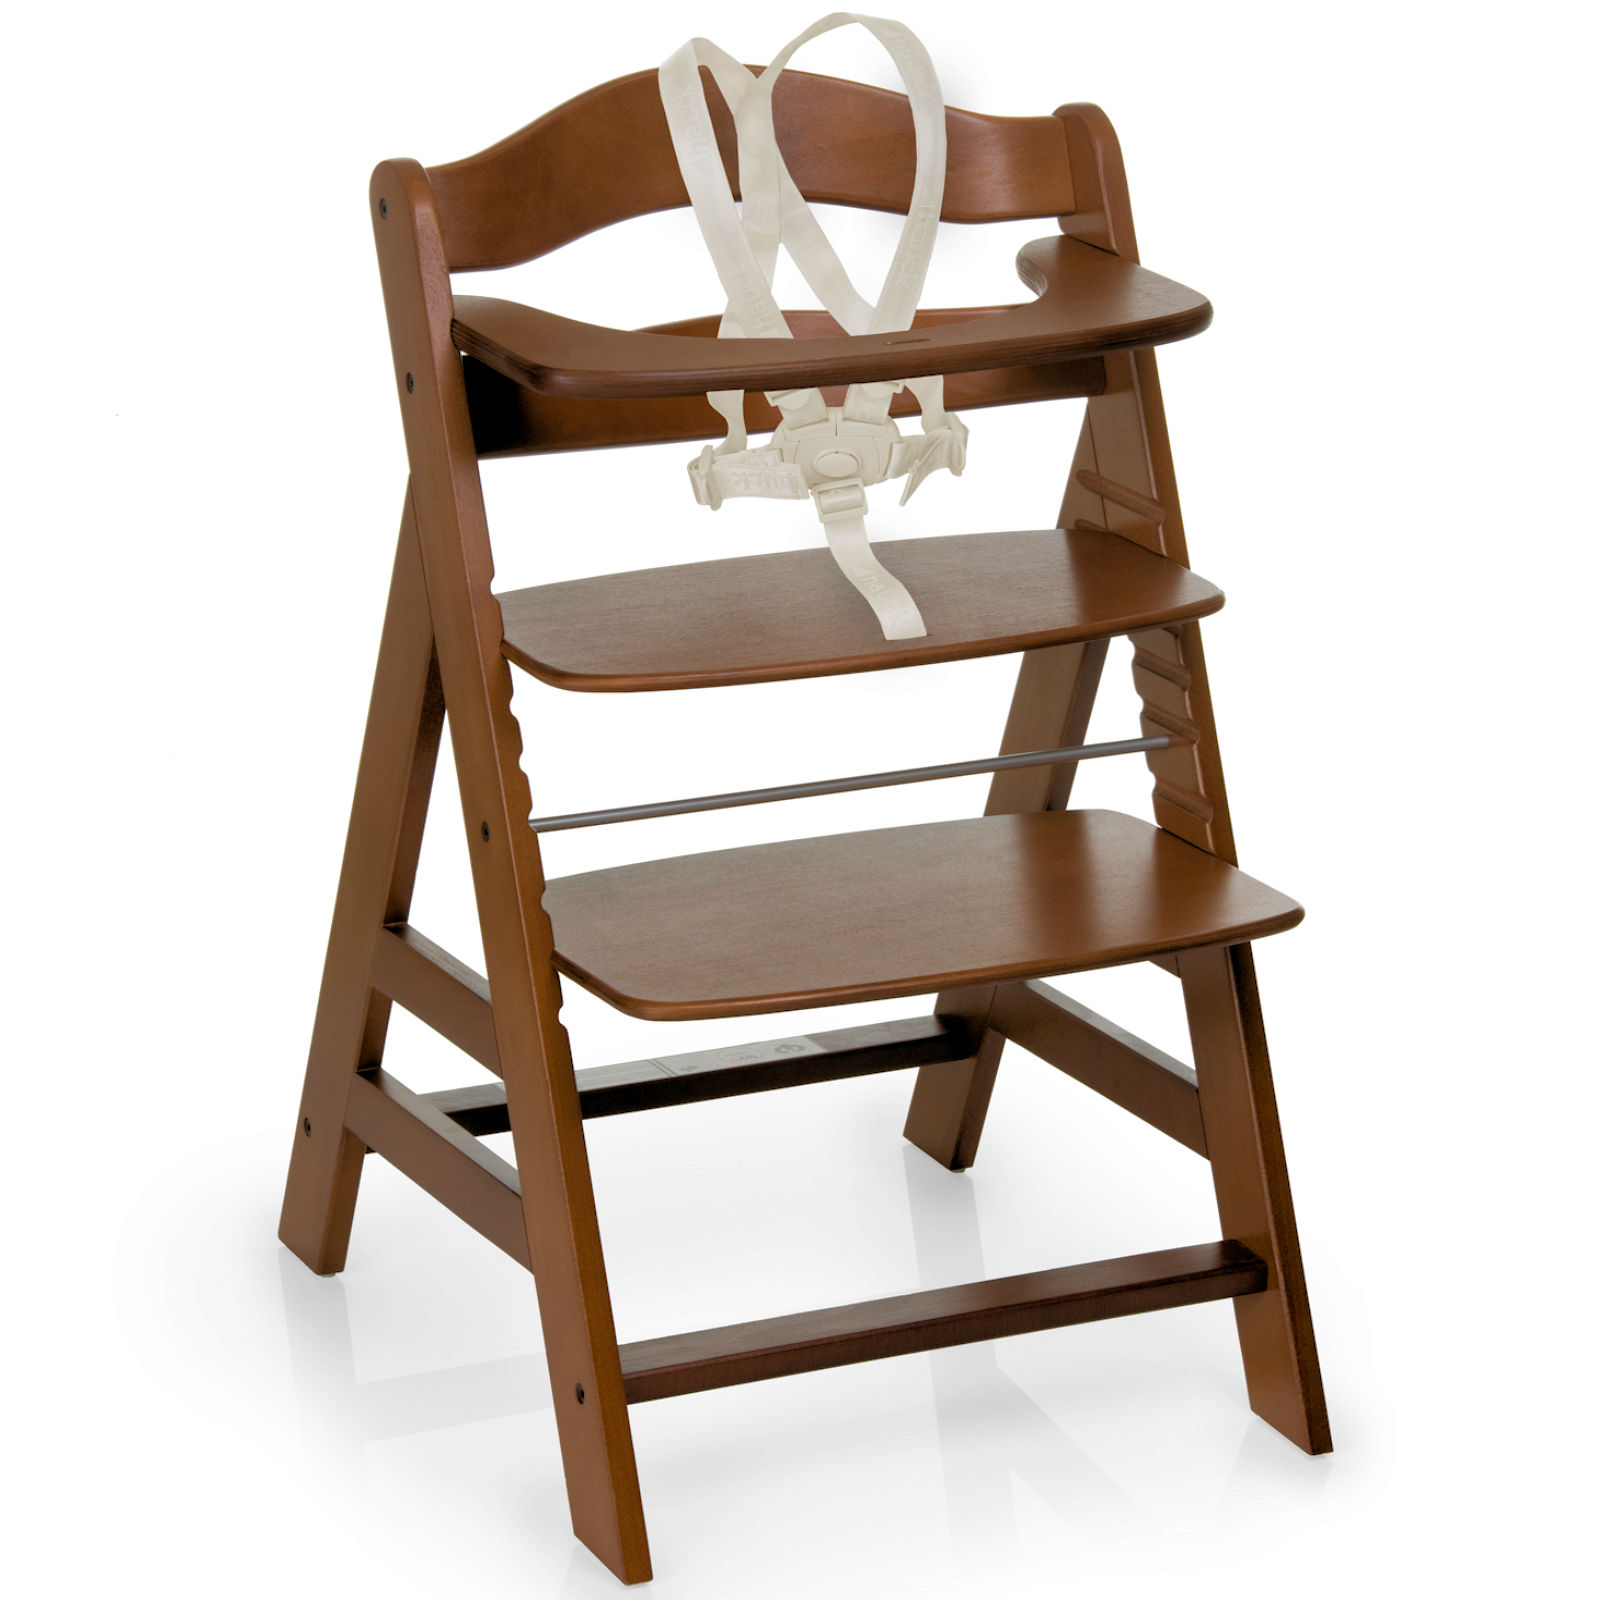 Hauck High Chair Hauck Alpha B Grow With Your Child Wooden Highchair Walnut